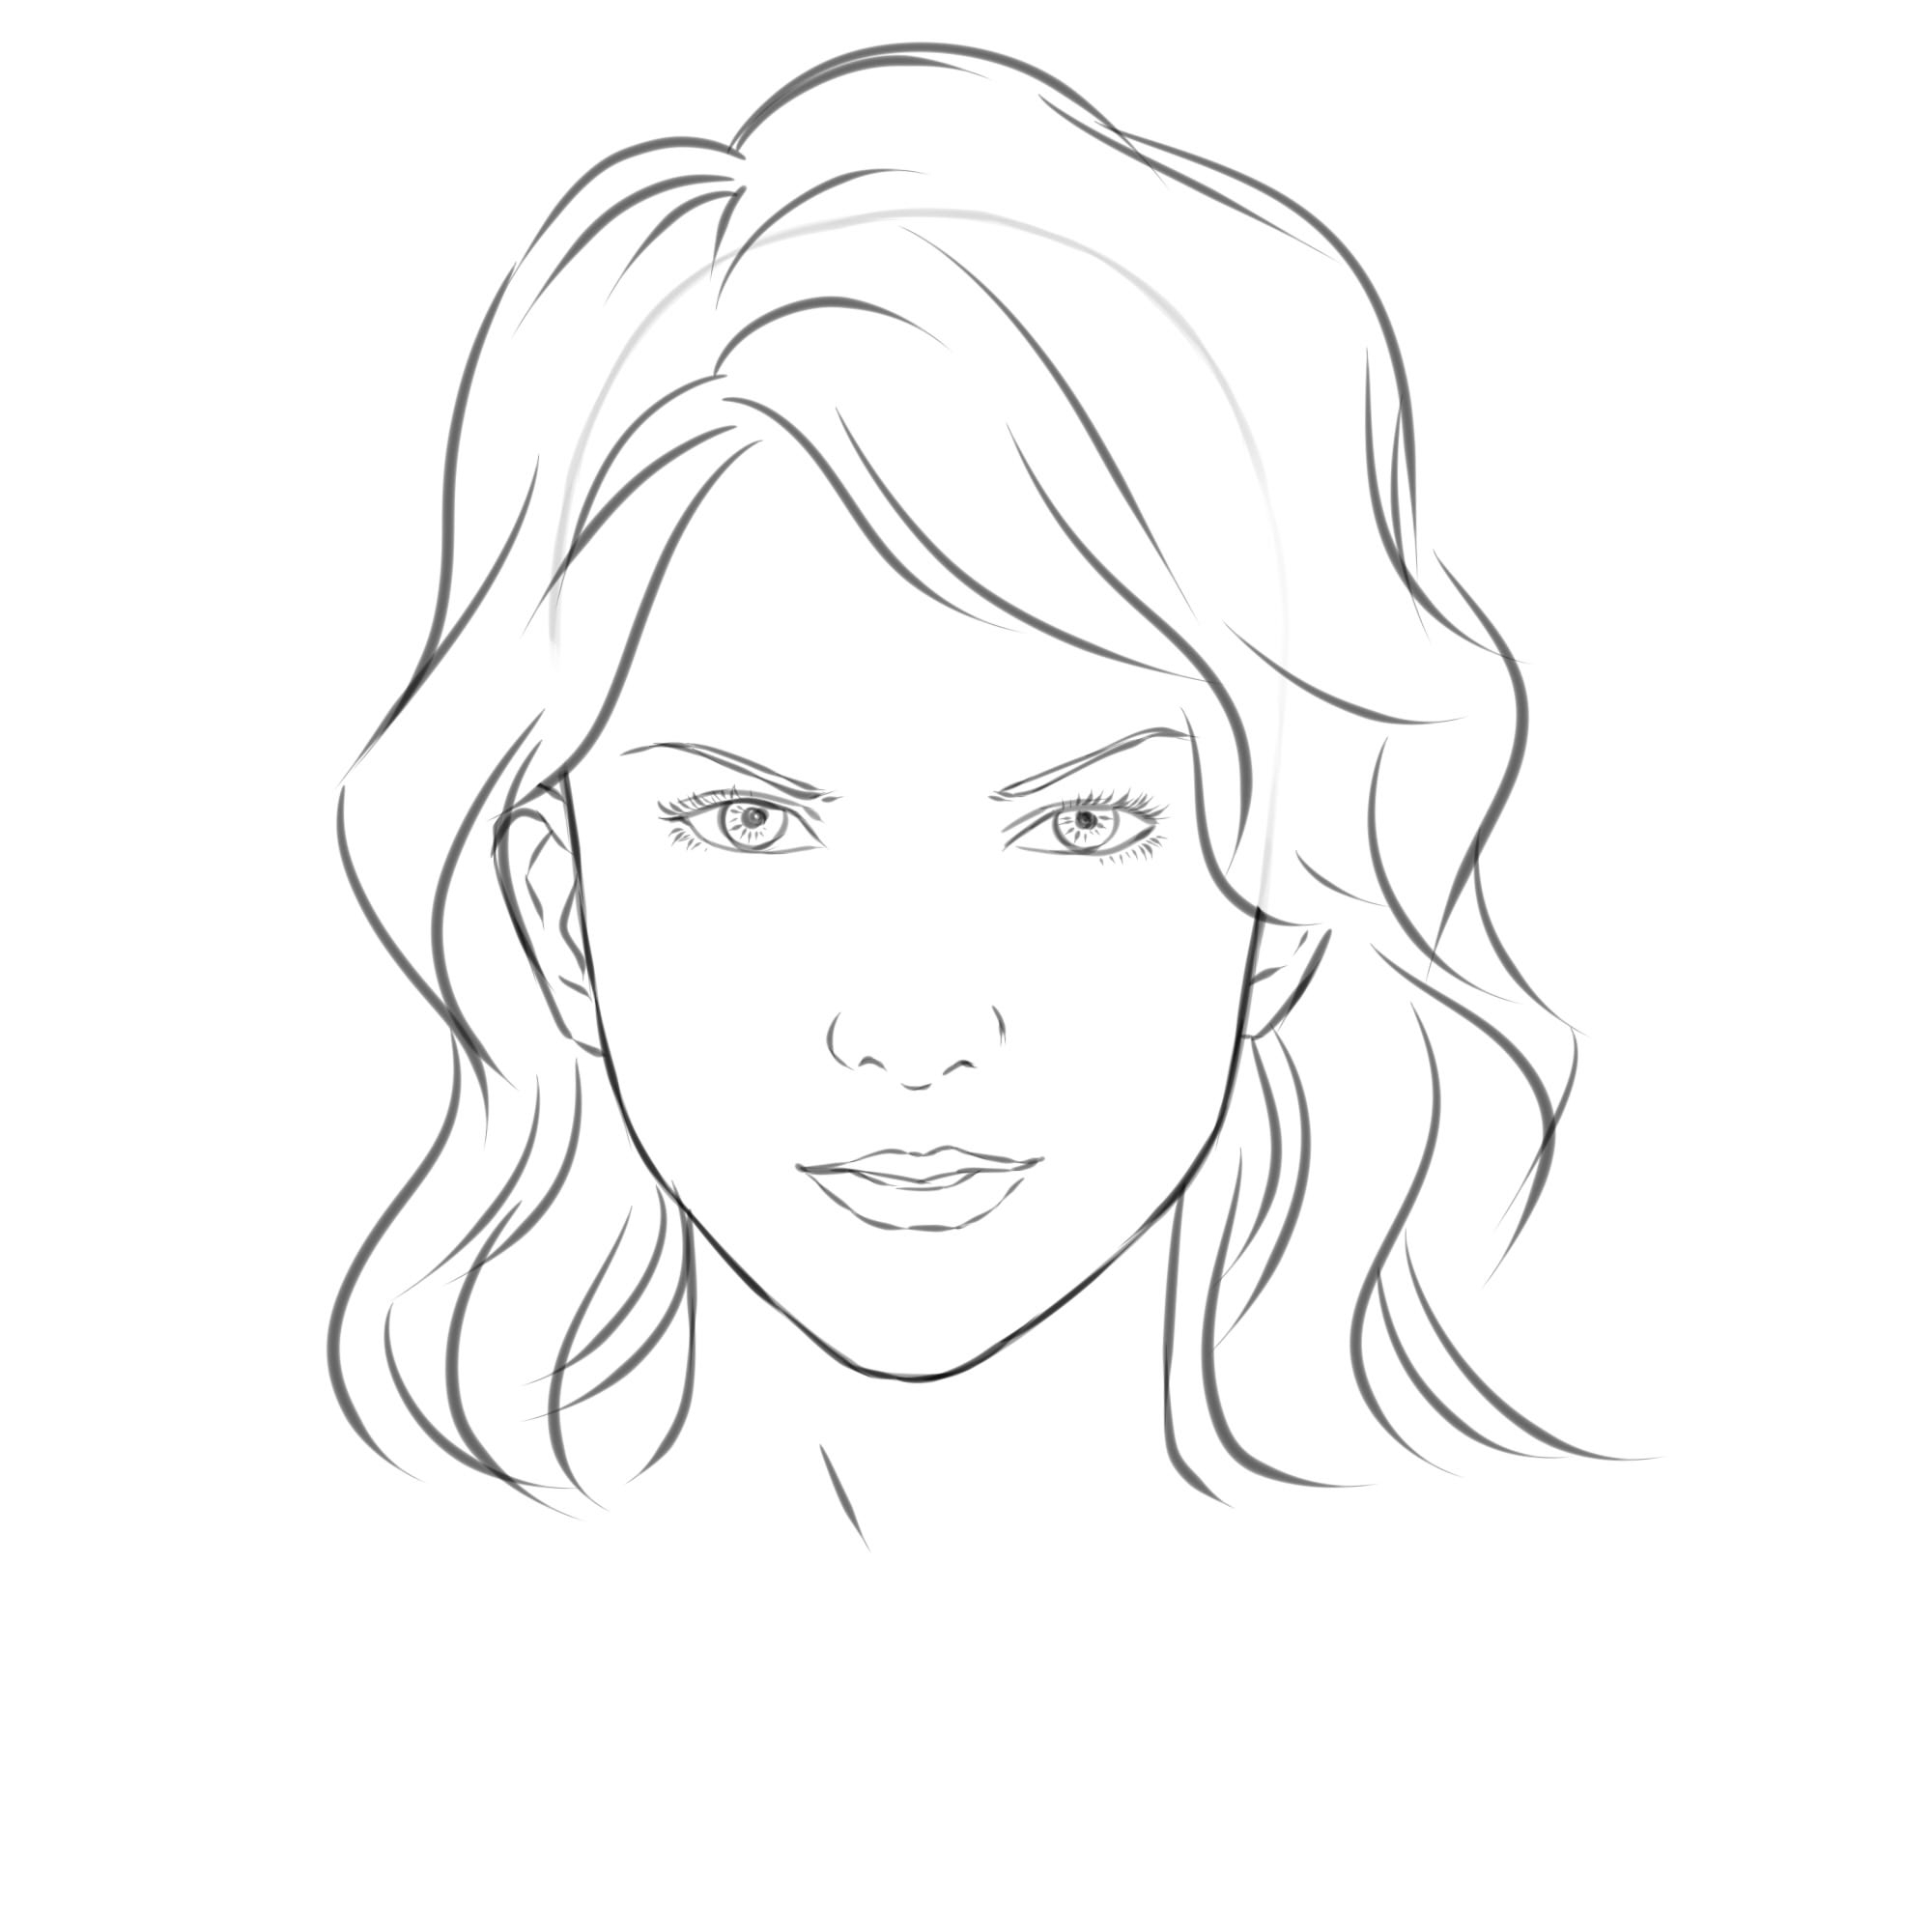 2000x2000 Easy Drawing Of Girl Face Easy Drawings Girls Face Draw A Girl'S